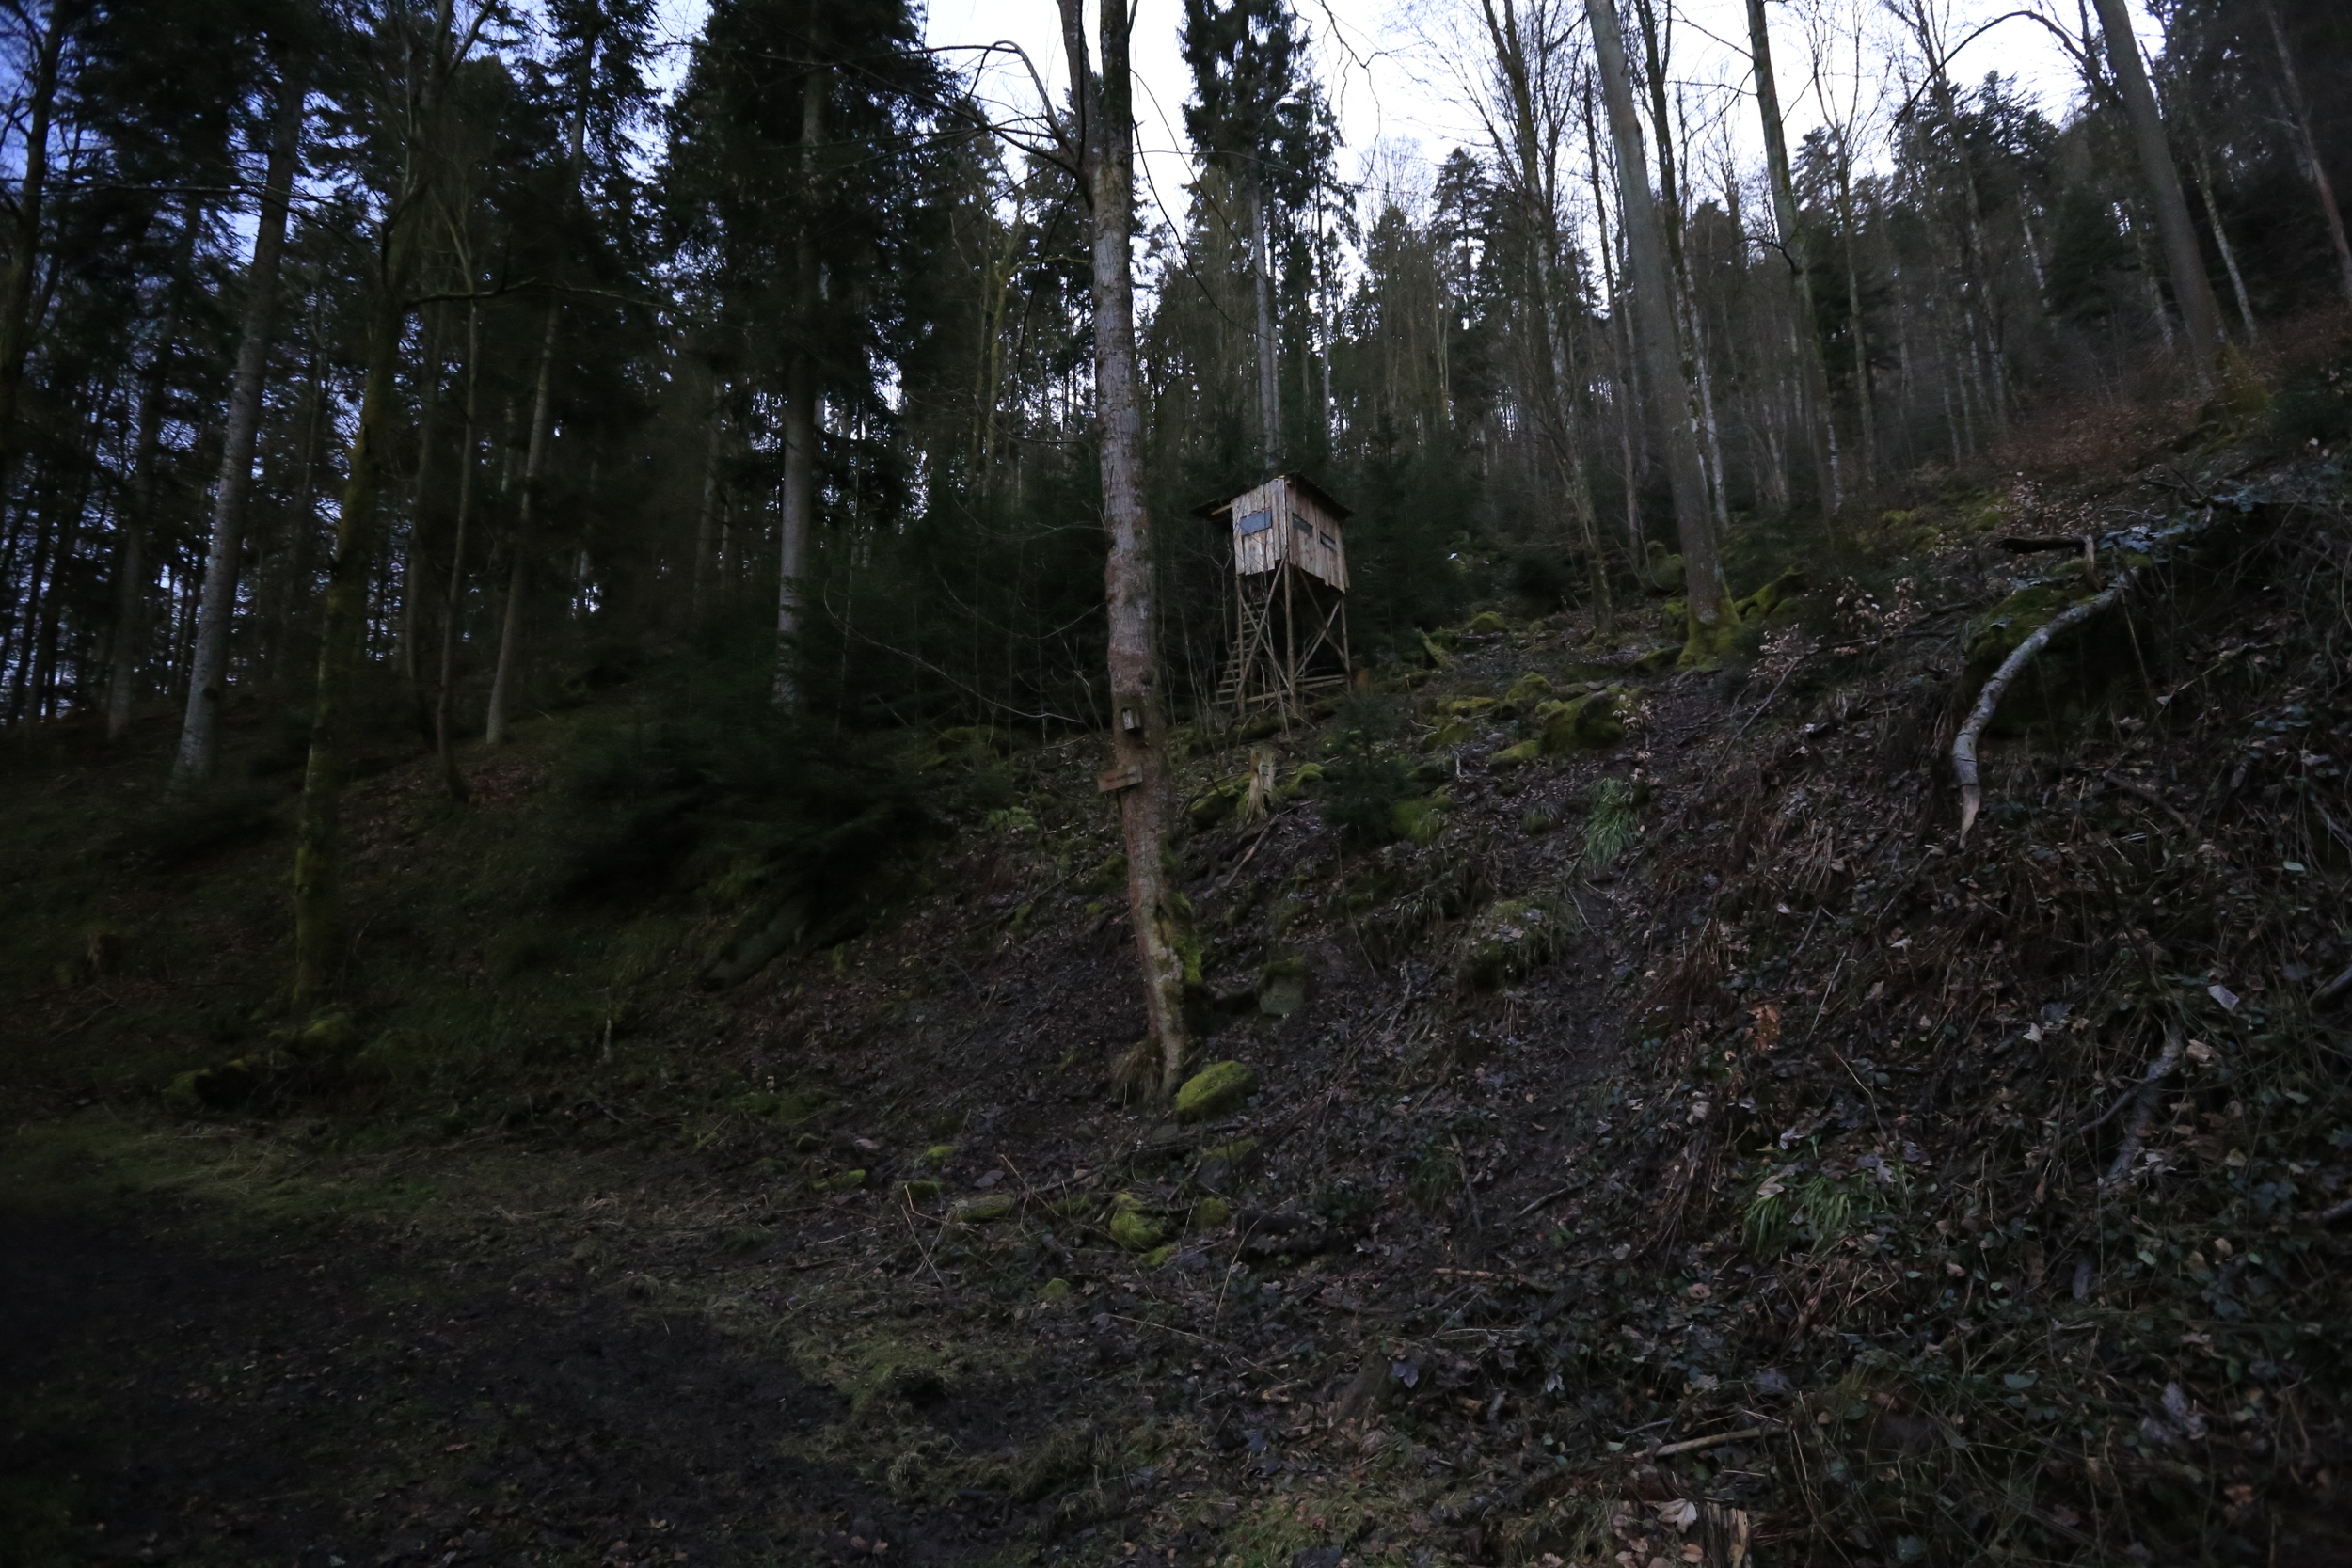 These often precarious watch towers are a familiar site in the Black Forest.